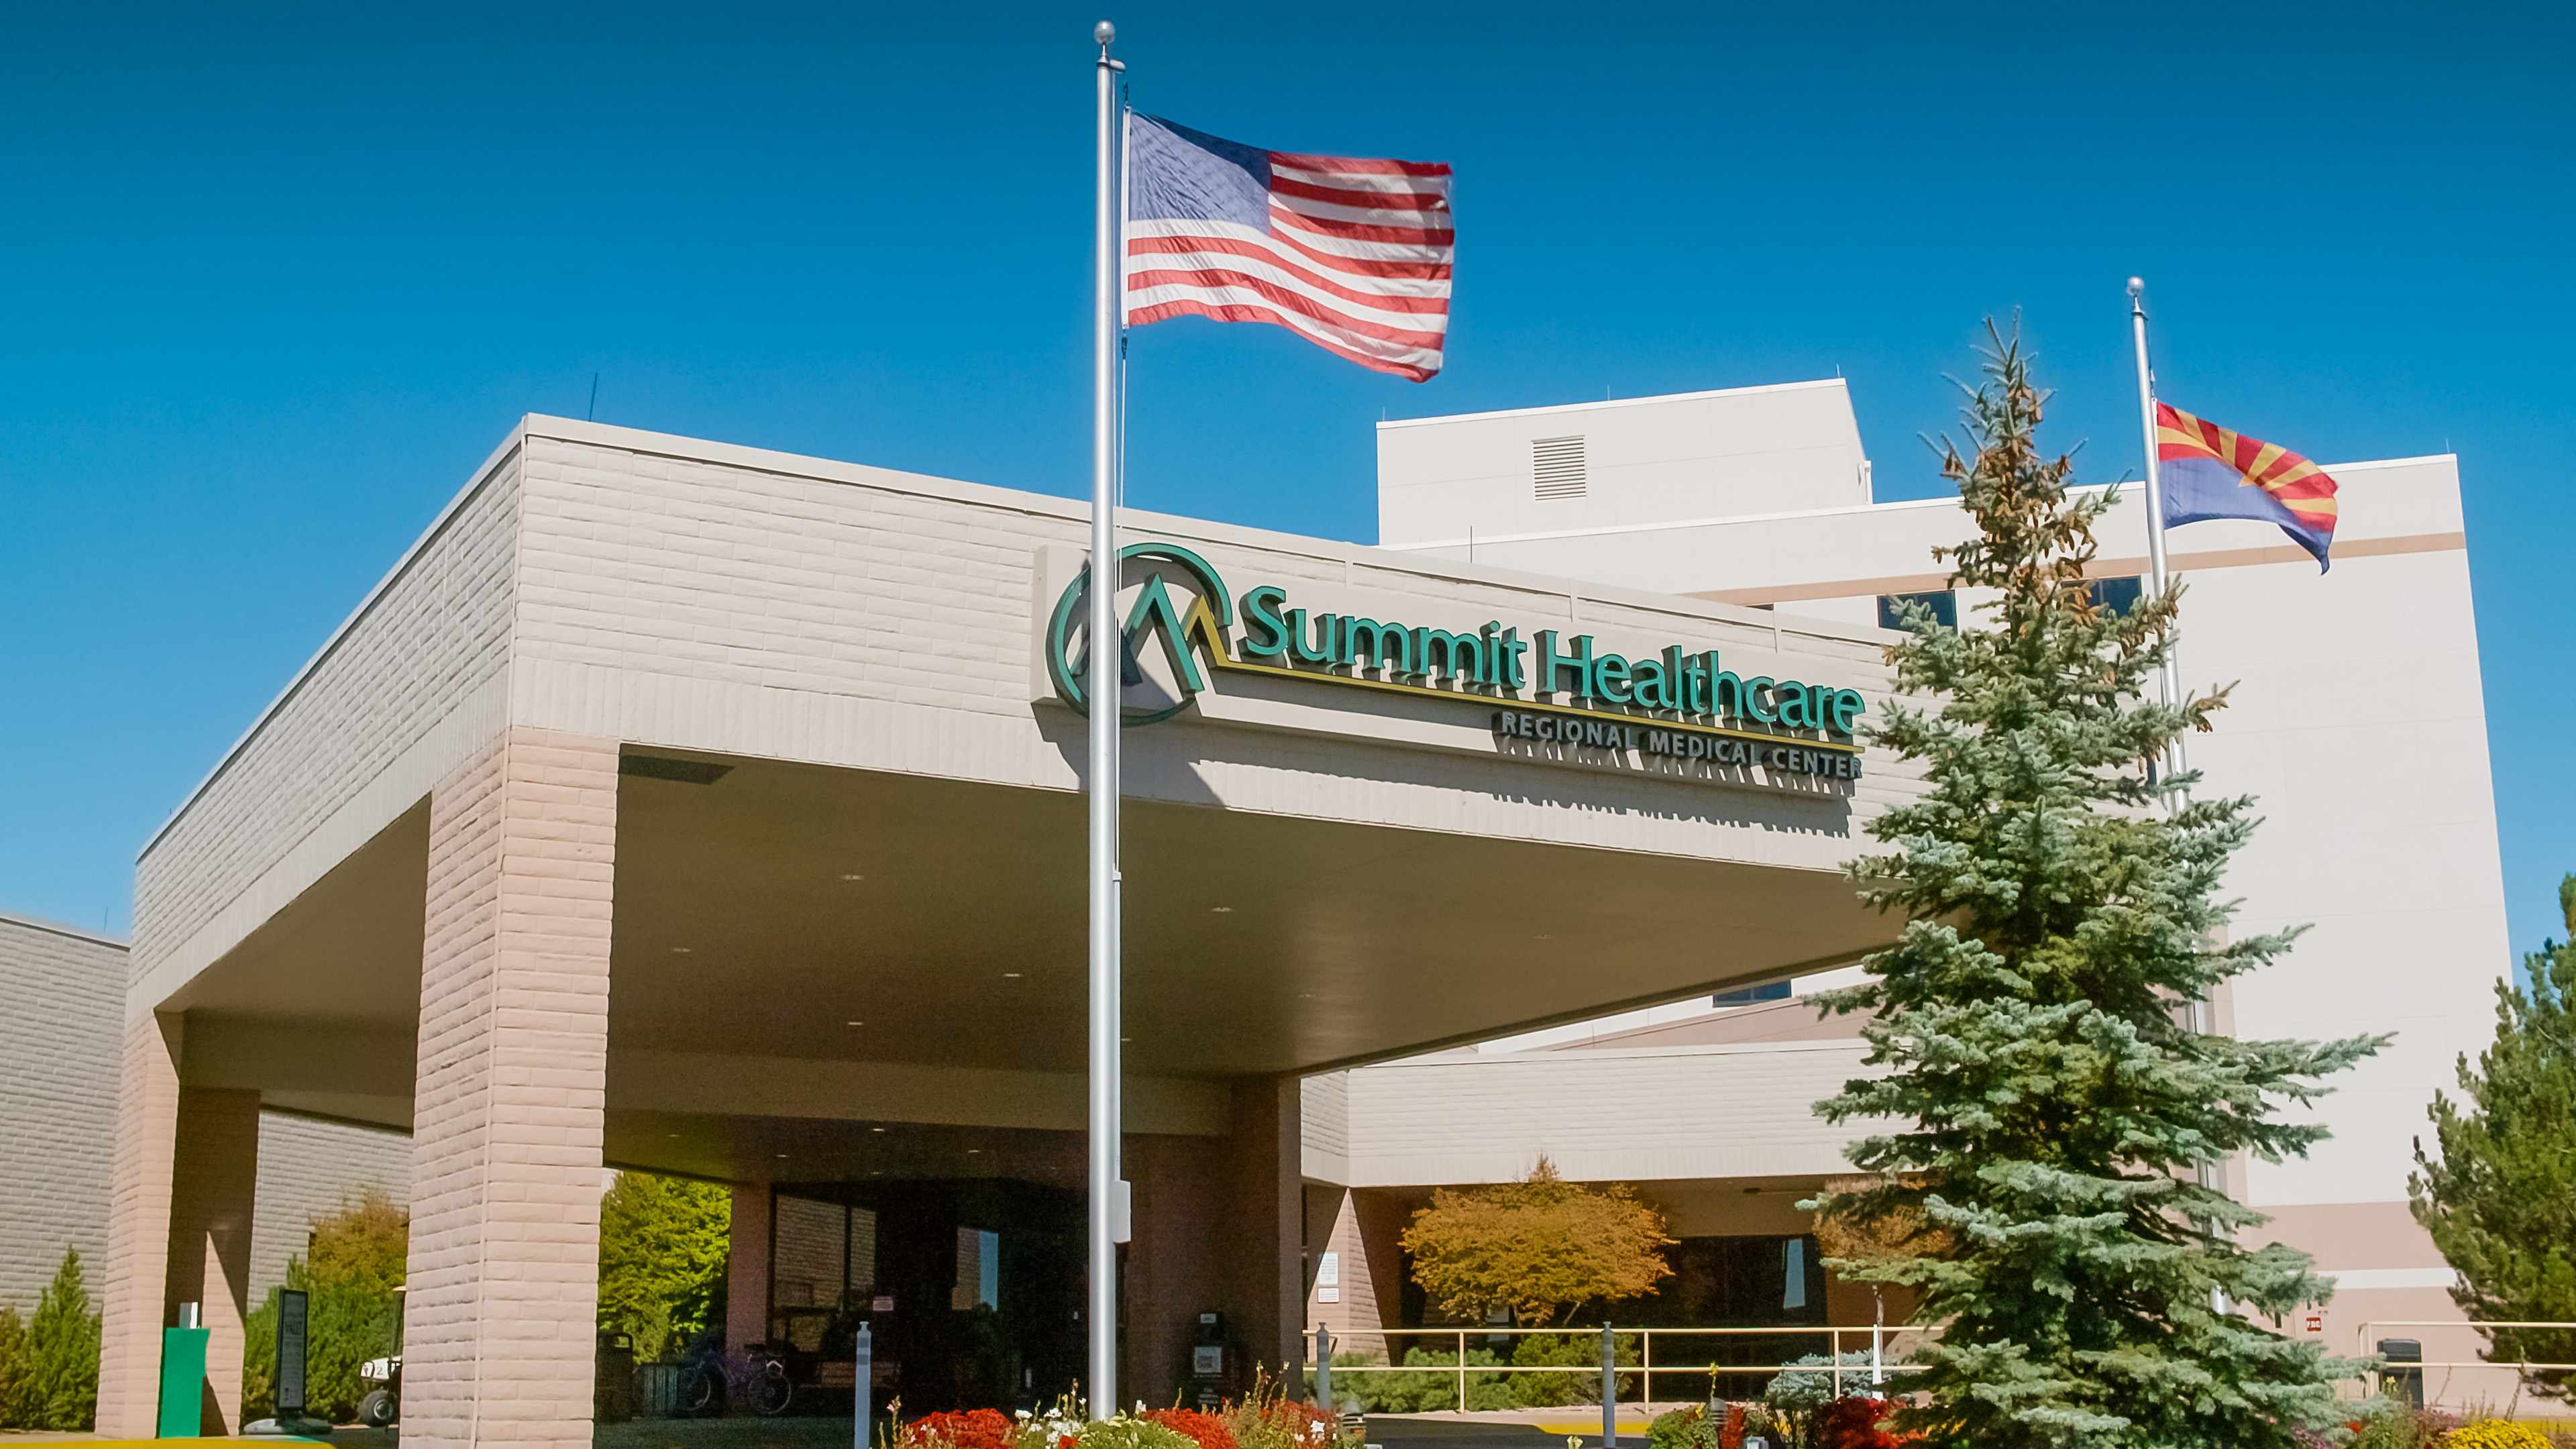 Summit Healthcare Regional Medical Center entrace